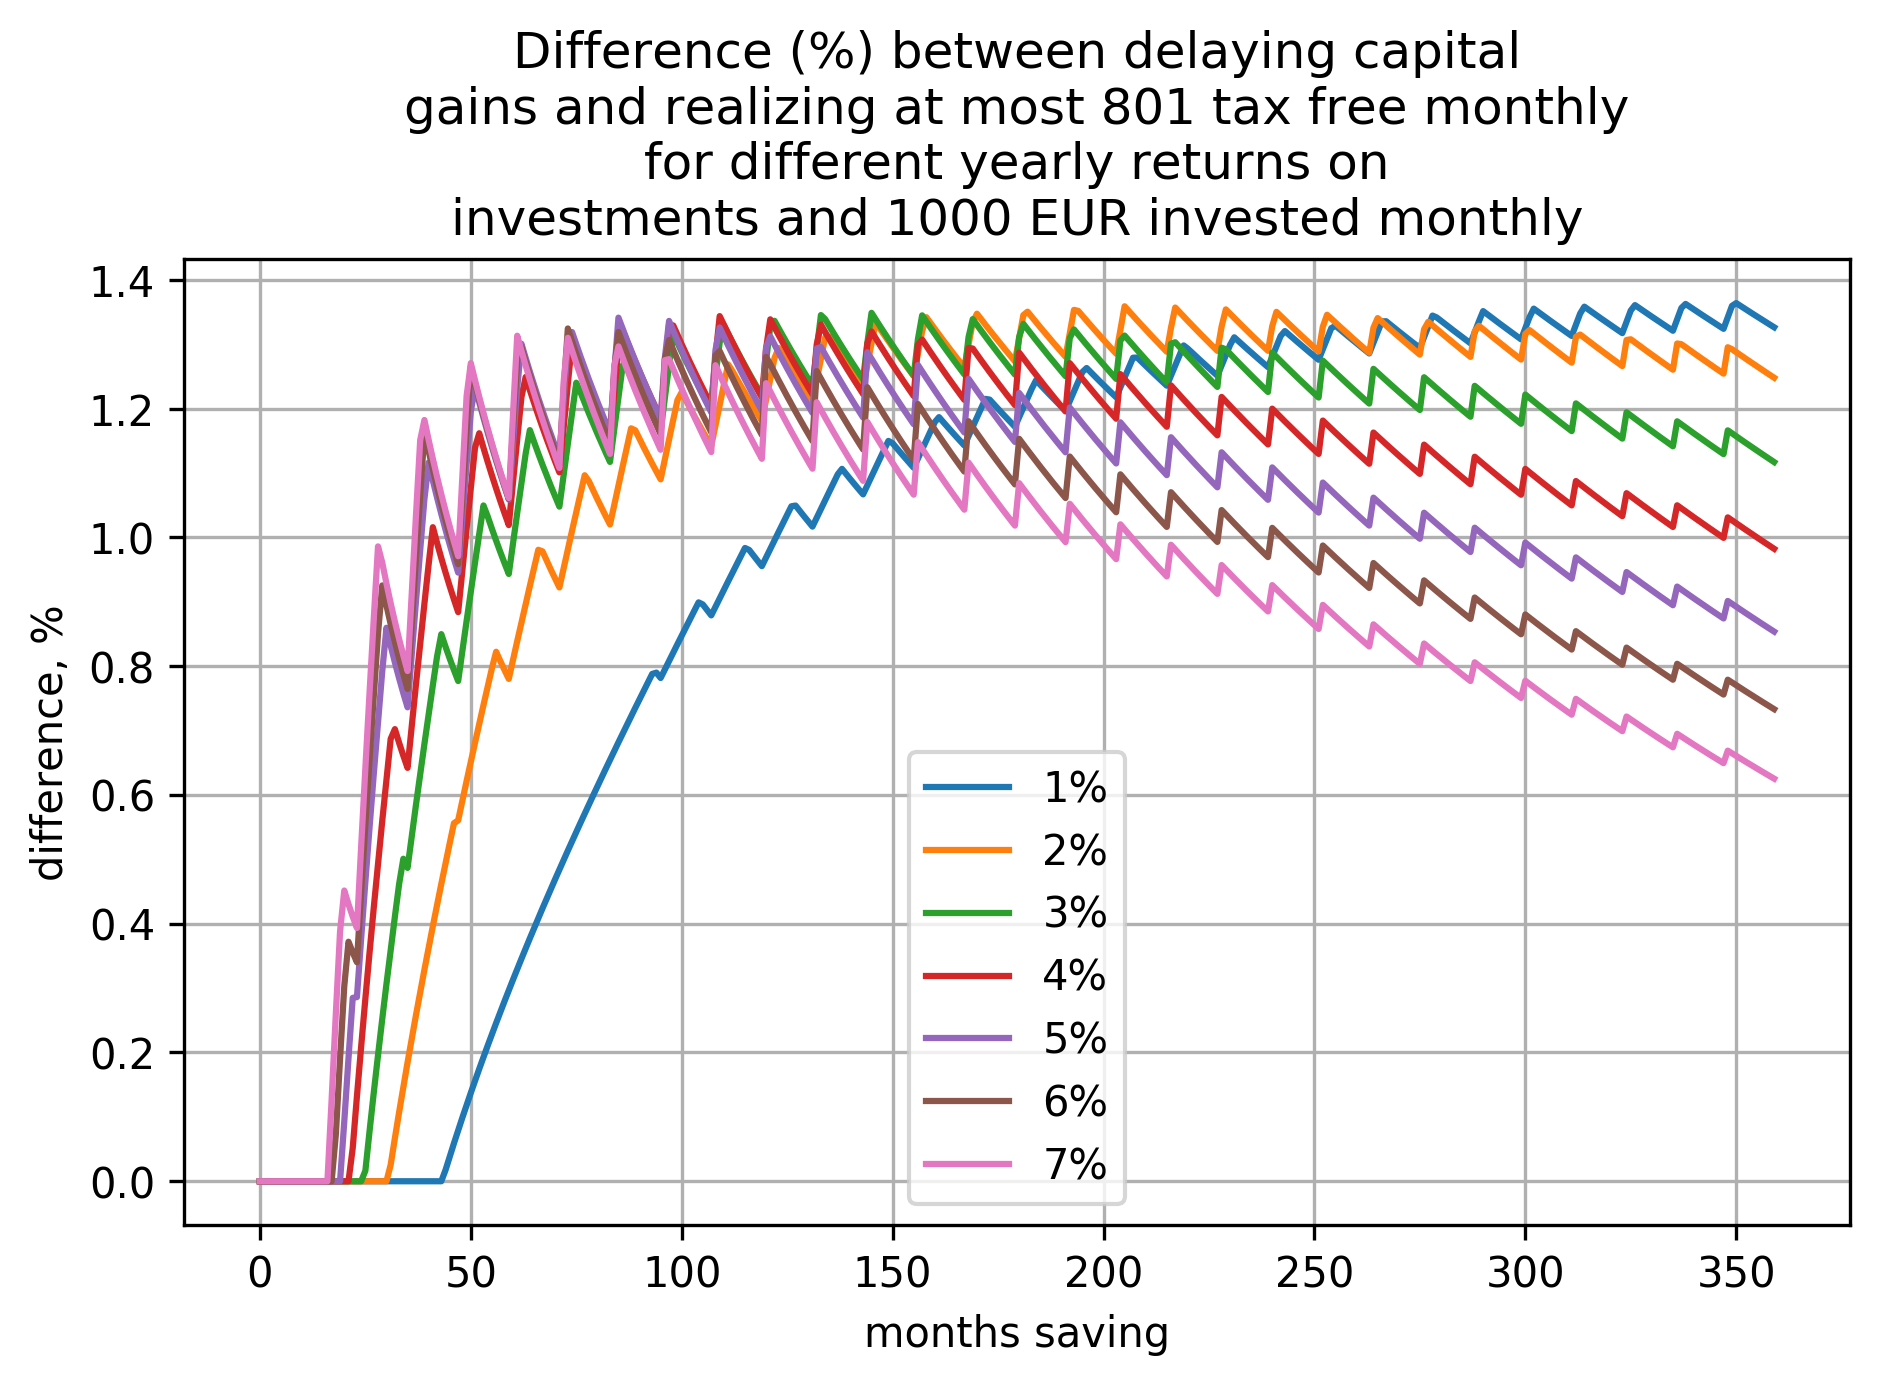 a plot showing how difference (in percents) between the two cases (delaying capital gains and realizing at most 801€ tax free yearly) depends on time saving and yearly return on investment when investing 1000€ per month